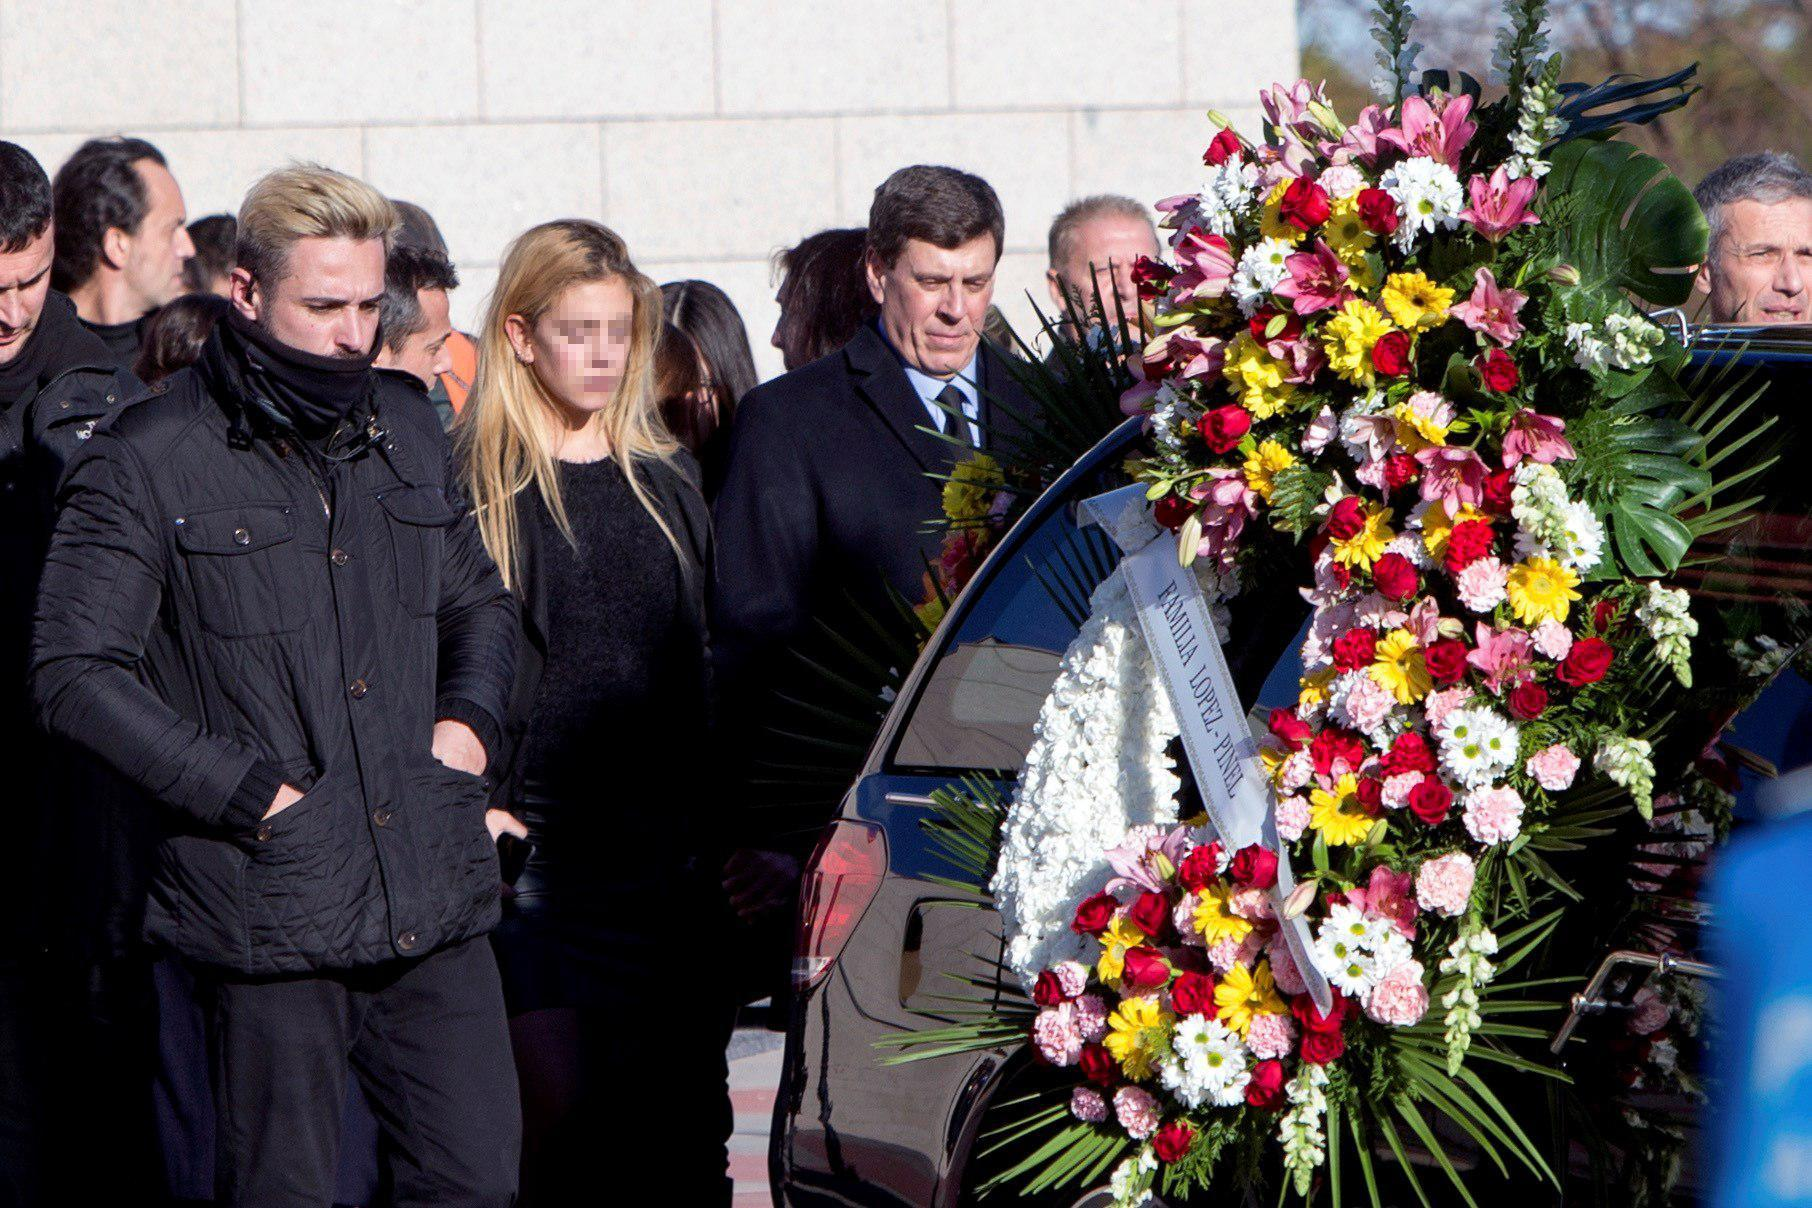 Funeral Diana Quer